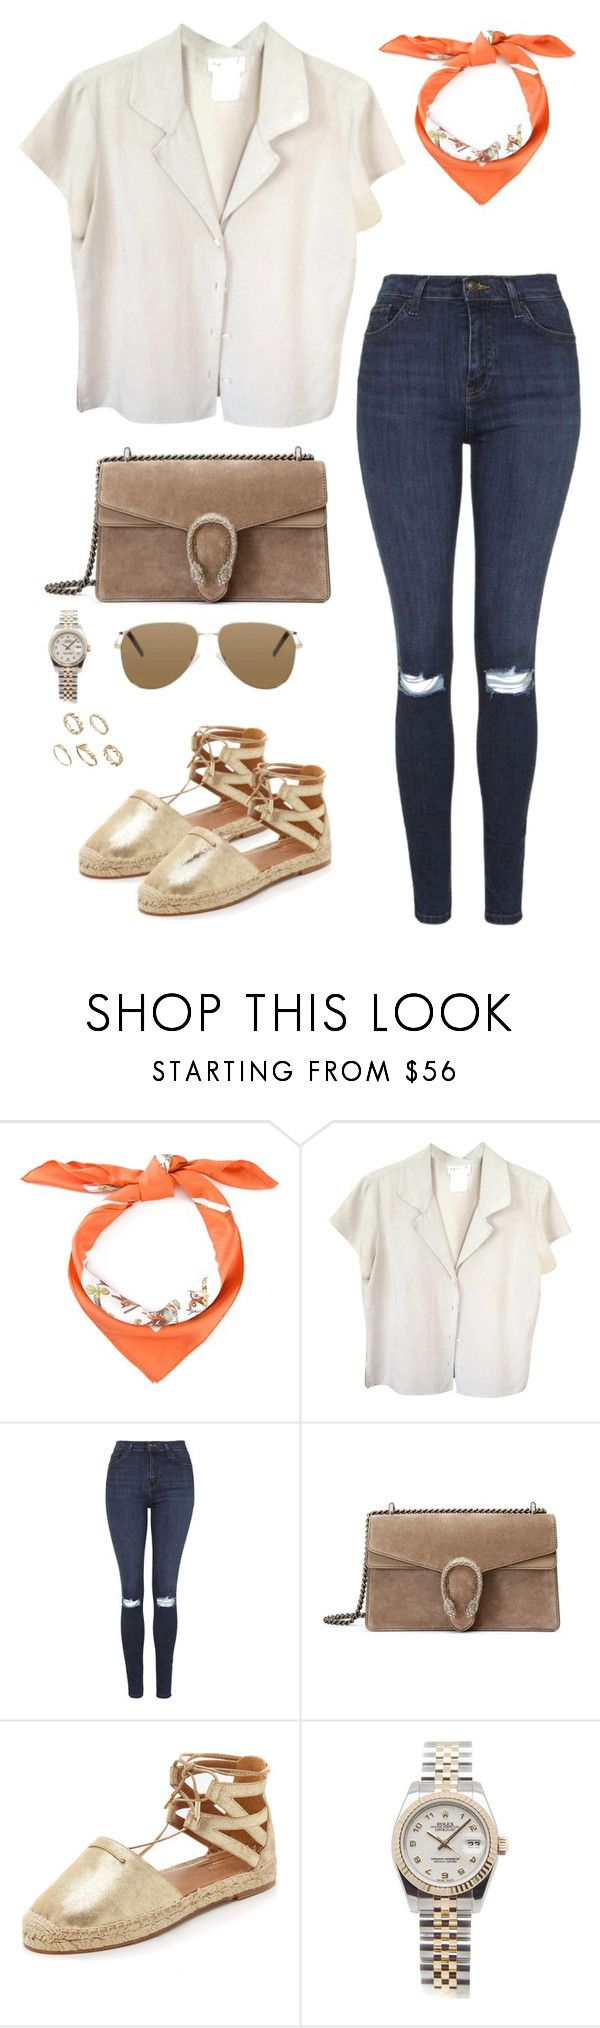 """Untitled #2234"" by andreagm ❤ liked on Polyvore featuring Hermès, agnès b., Topshop, Gucci, Aquazzura, Yves Saint Laurent, Rolex and ASOS"